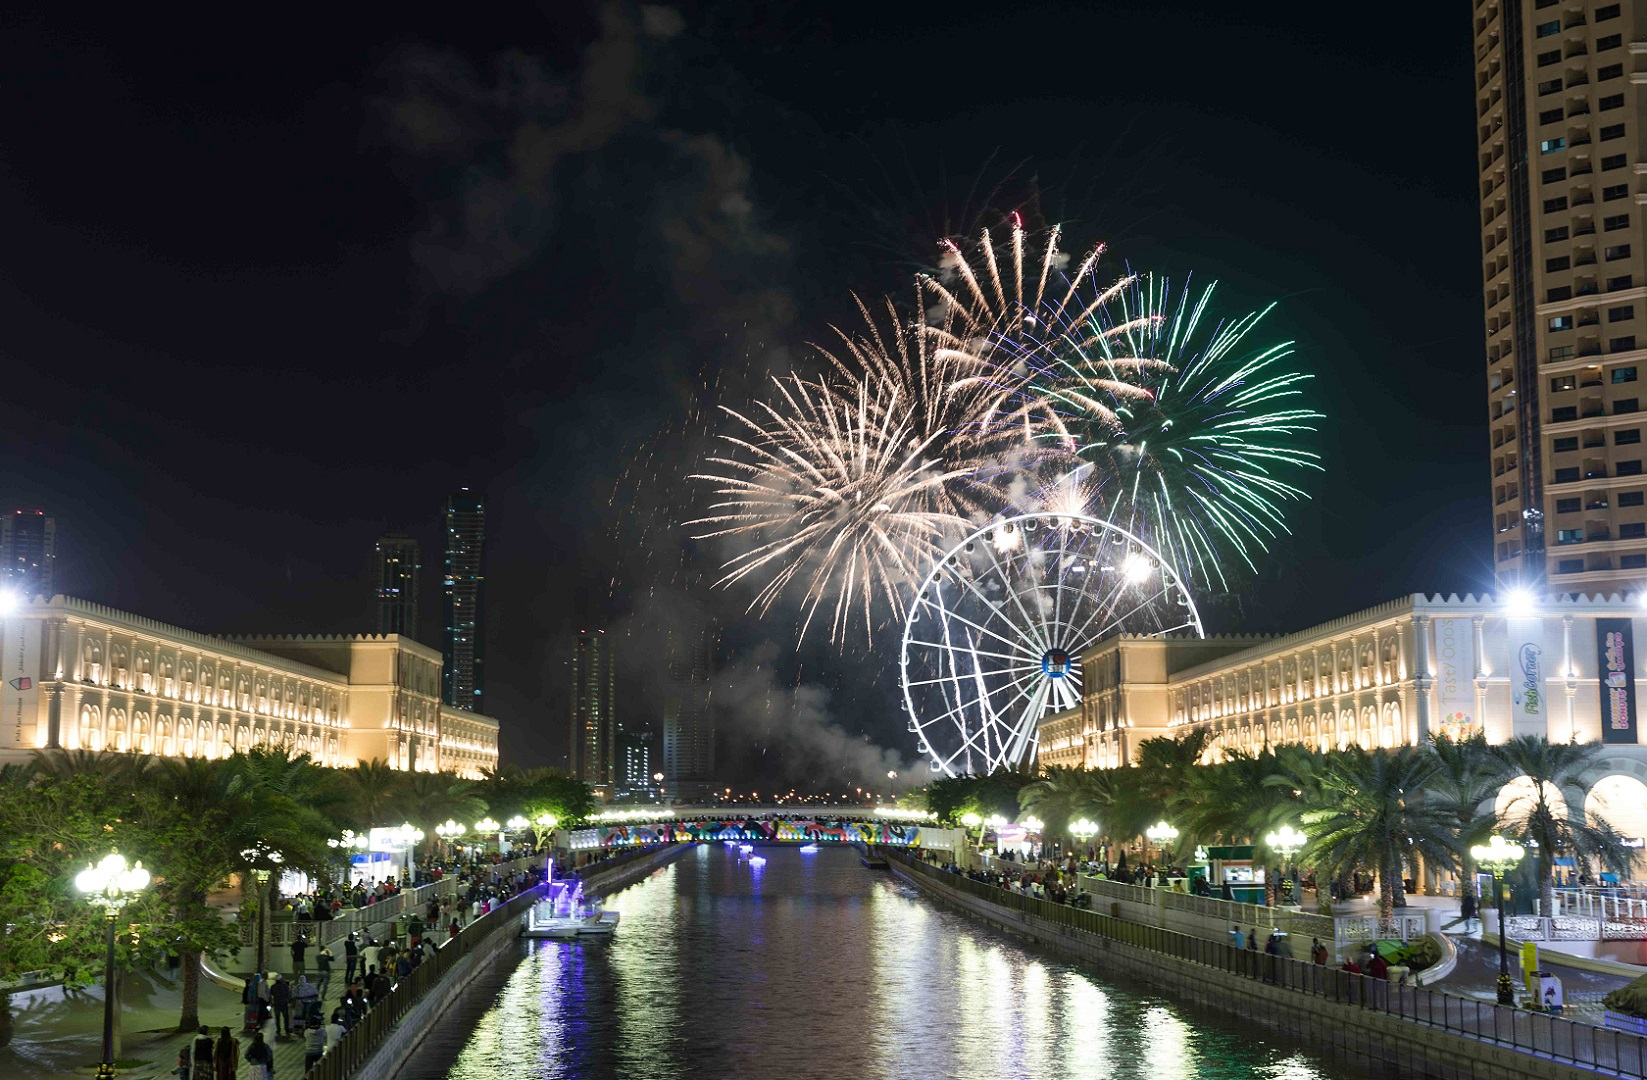 New Year's Eve 2018 in Sharjah in pictures